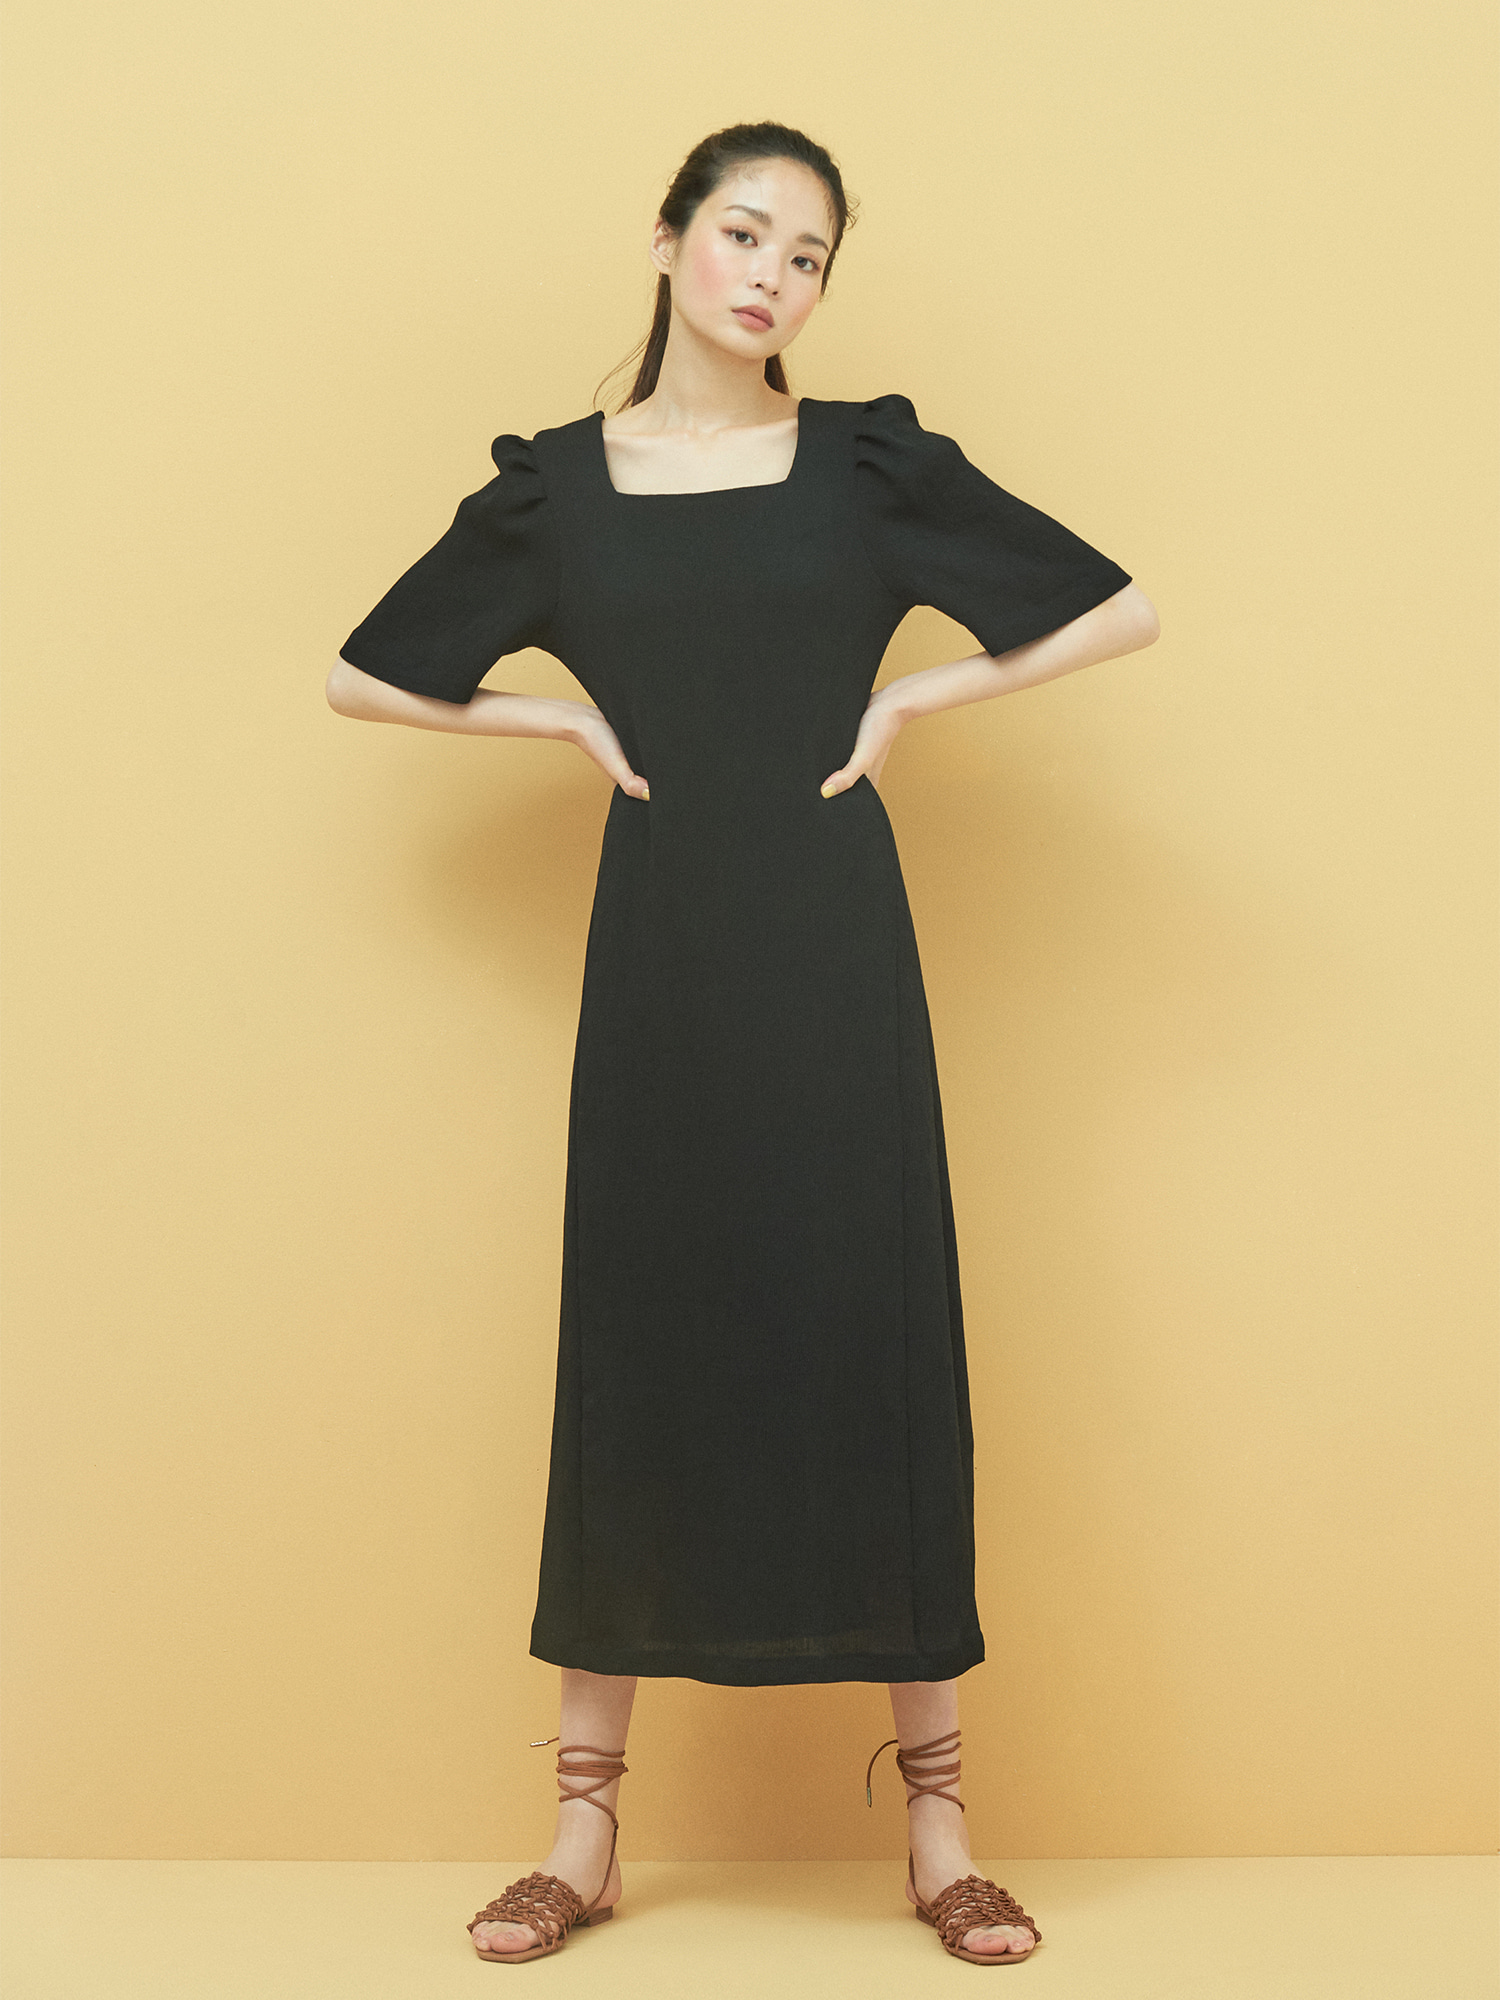 [6/4 예약배송] Square neck Minimal Dress in Black